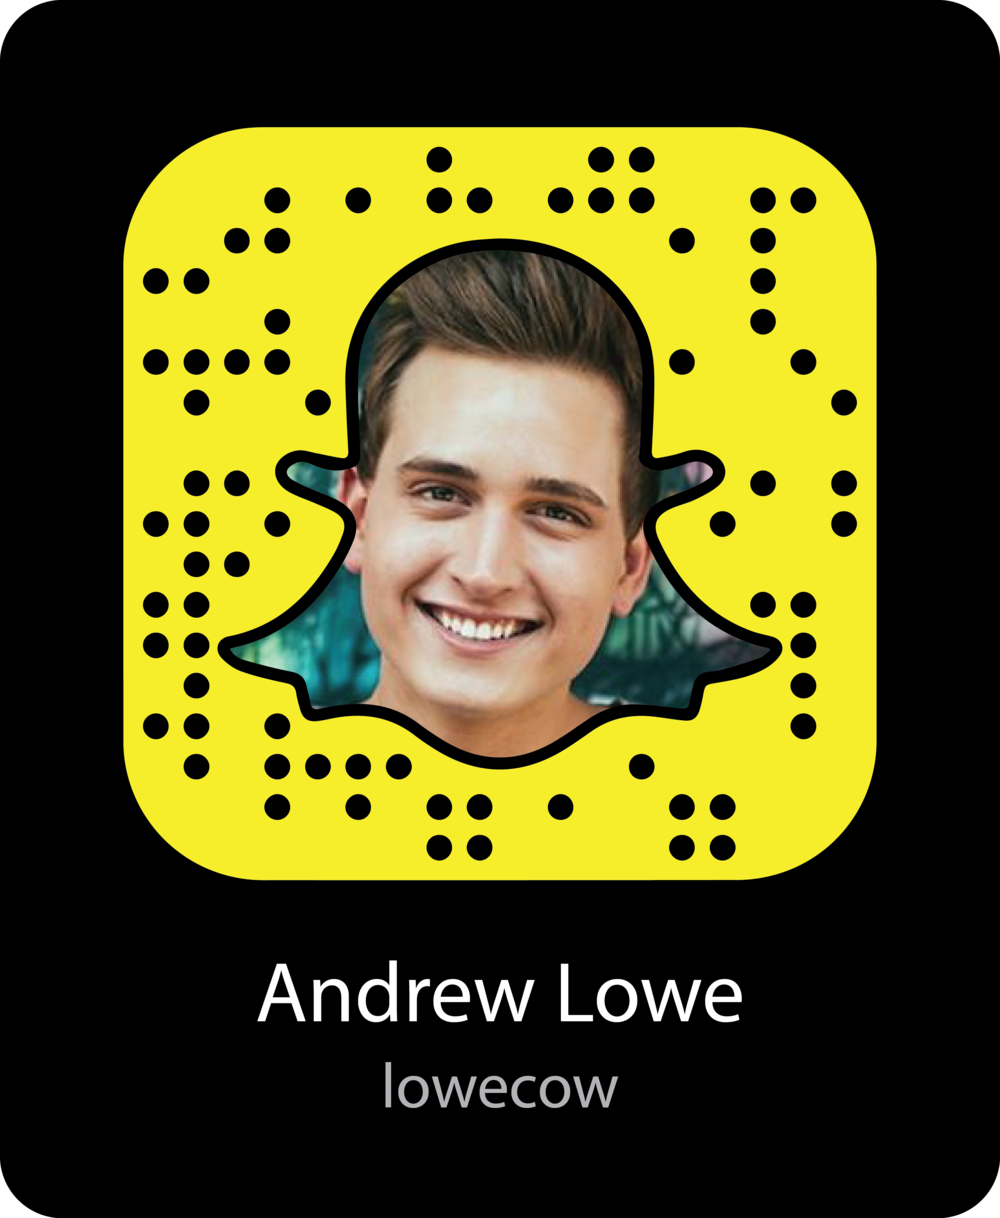 andrew-lowe-celebrity-snapchat-snapcode